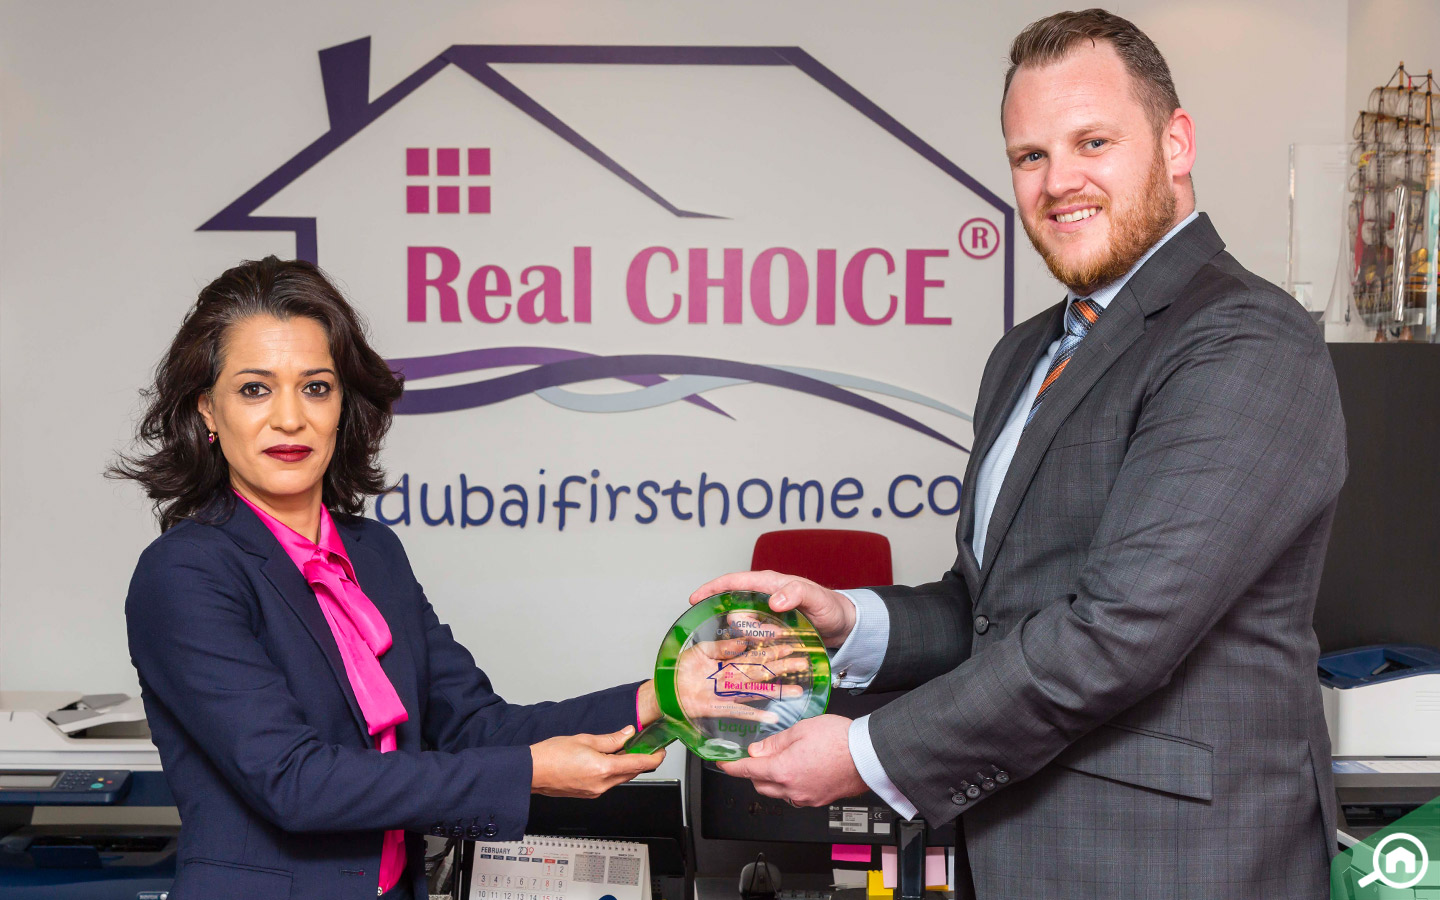 Hind Jouini - real choice dubai